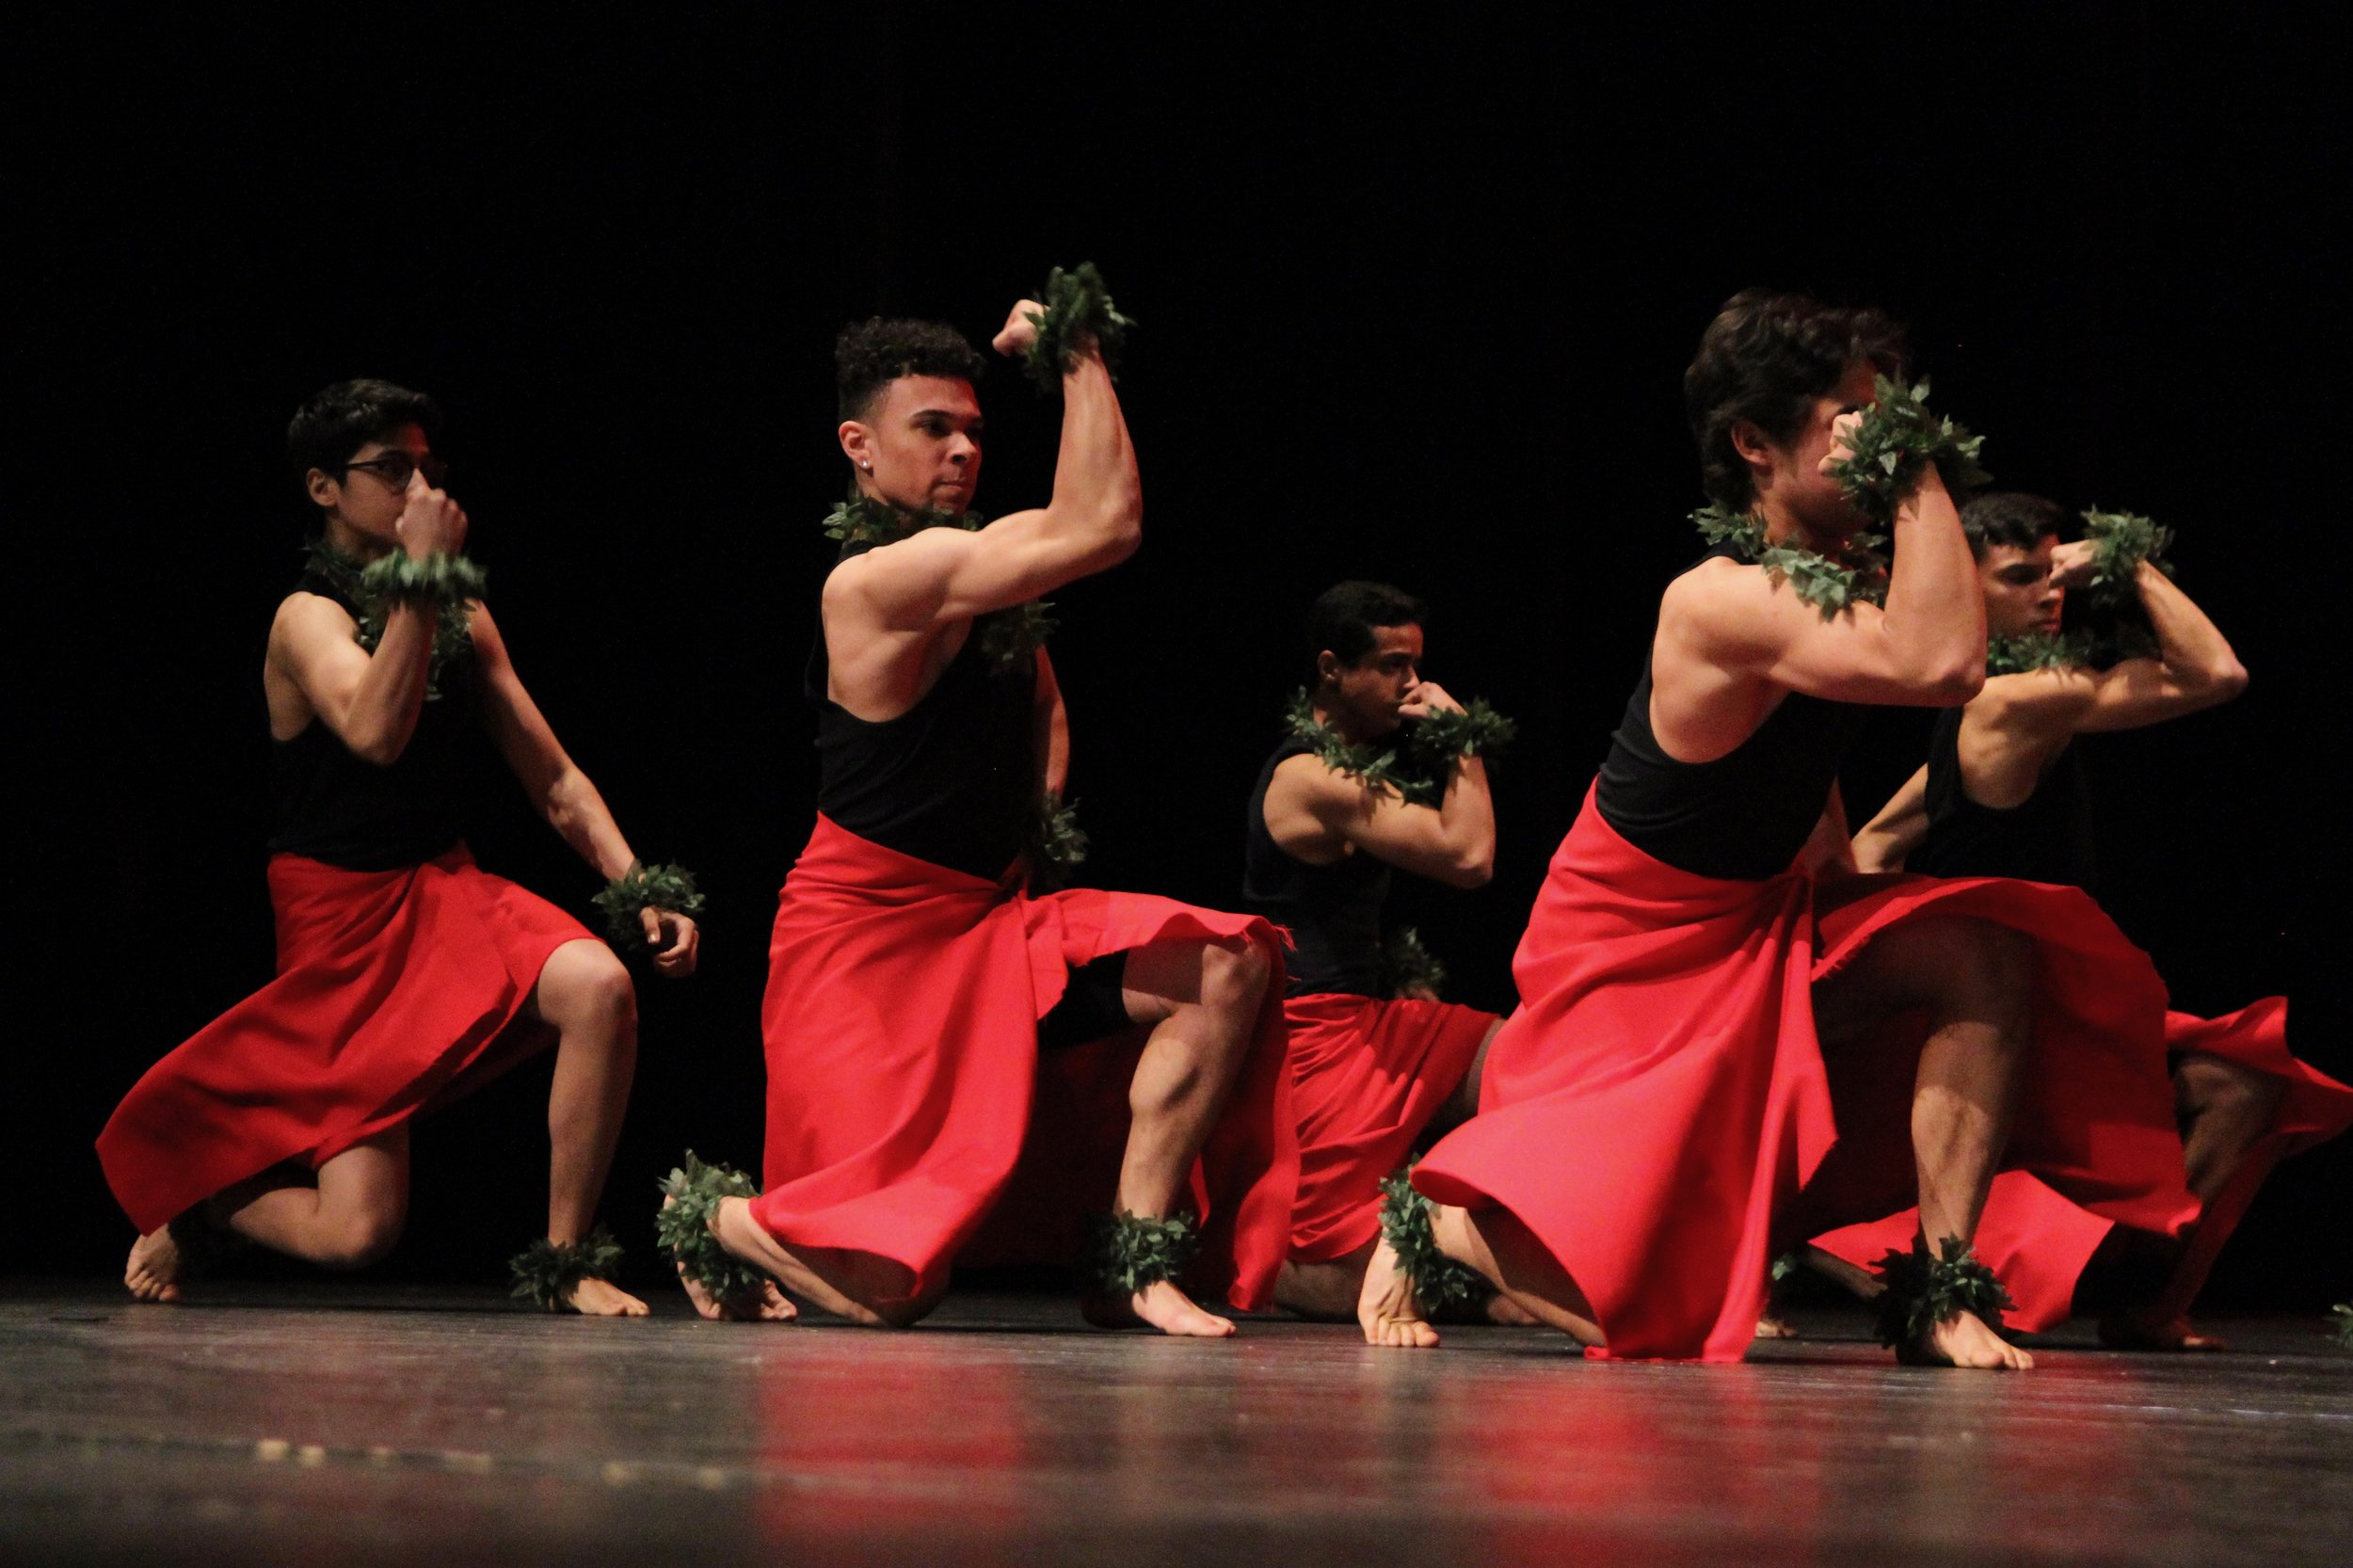 The men of Ohana continue to show their strength as we get a glimpse of their powerful muscles